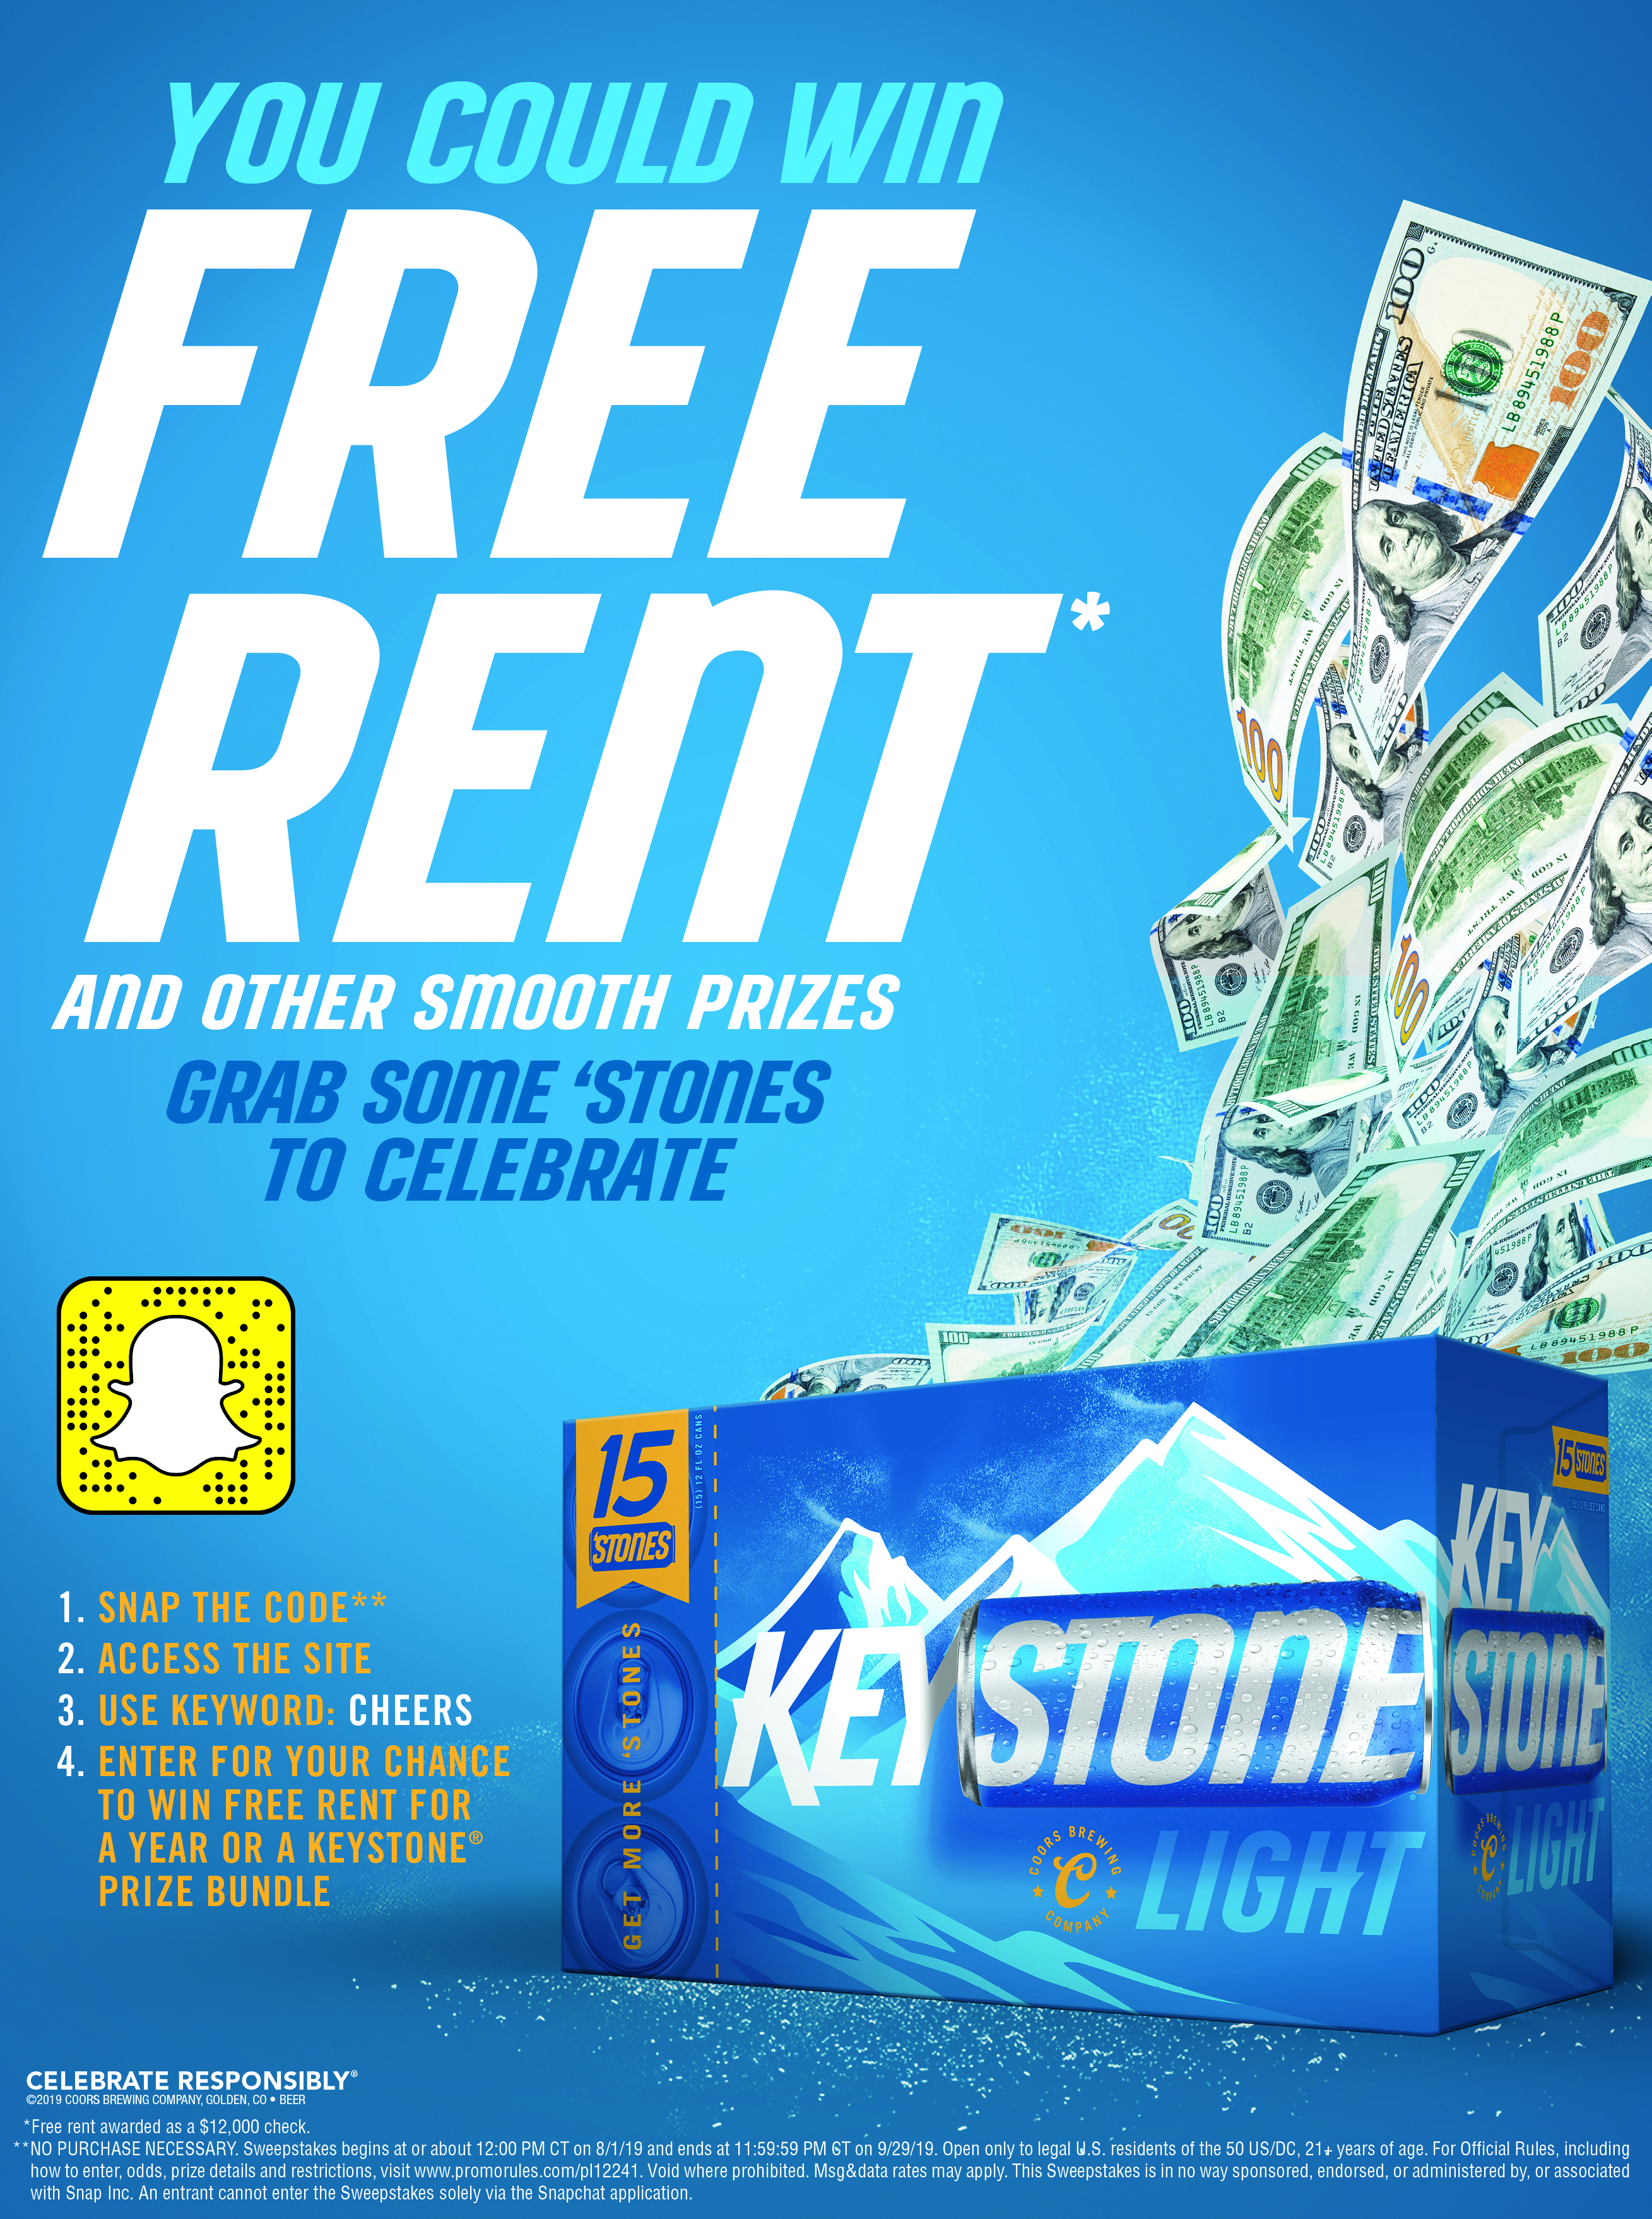 Keystone Light giving away a year's worth of free rent as